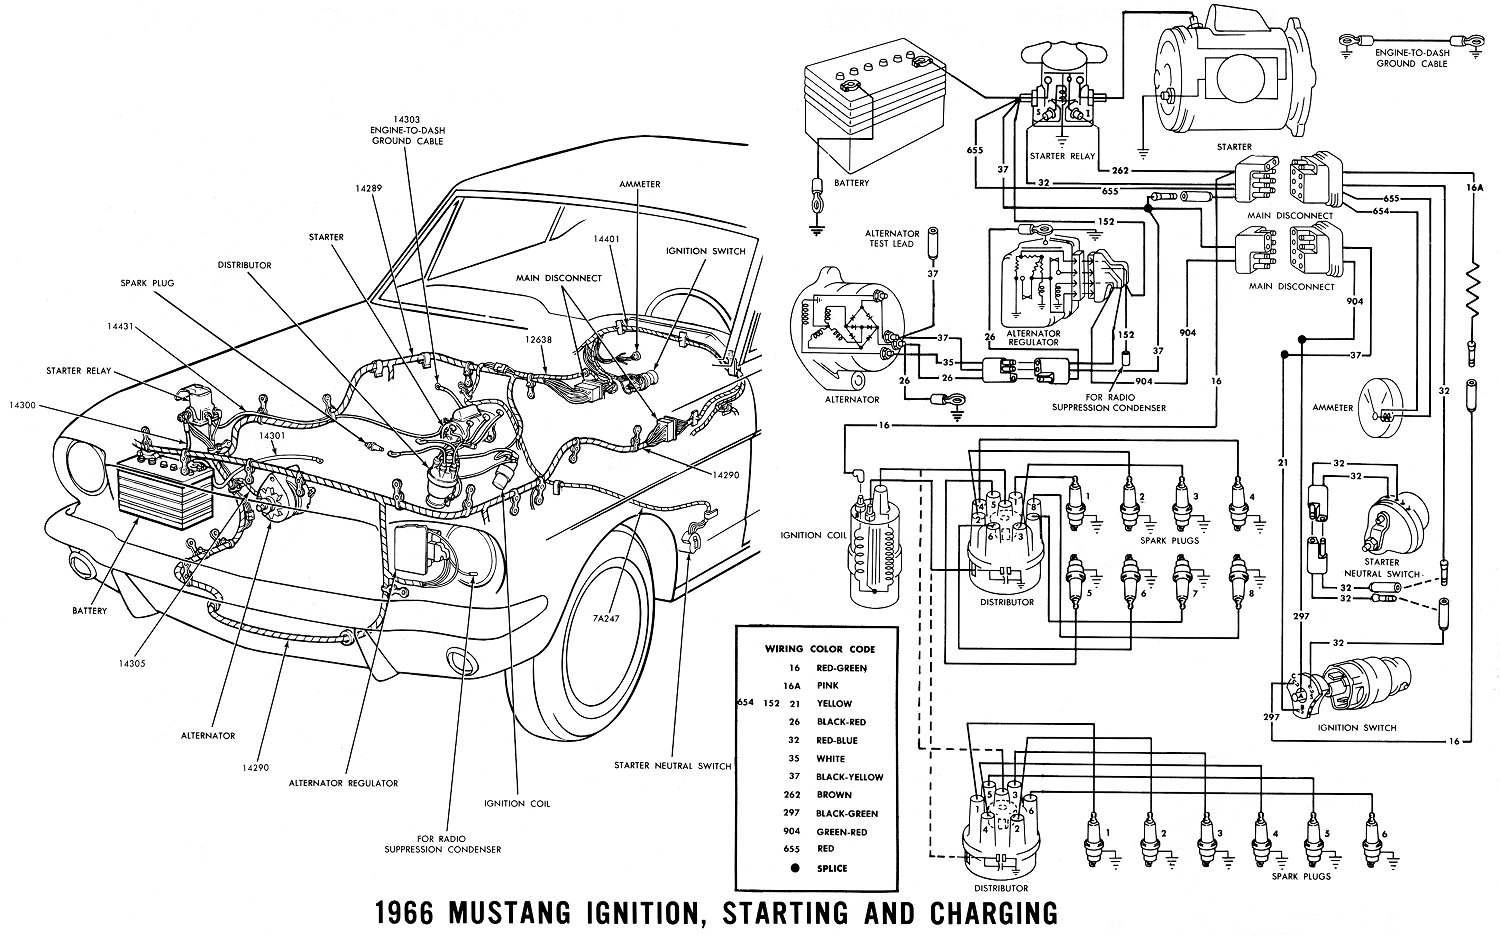 Engine Wiring Diagram Schema Diagrams Kohler 66 Mustang Change Your Idea With Design U2022